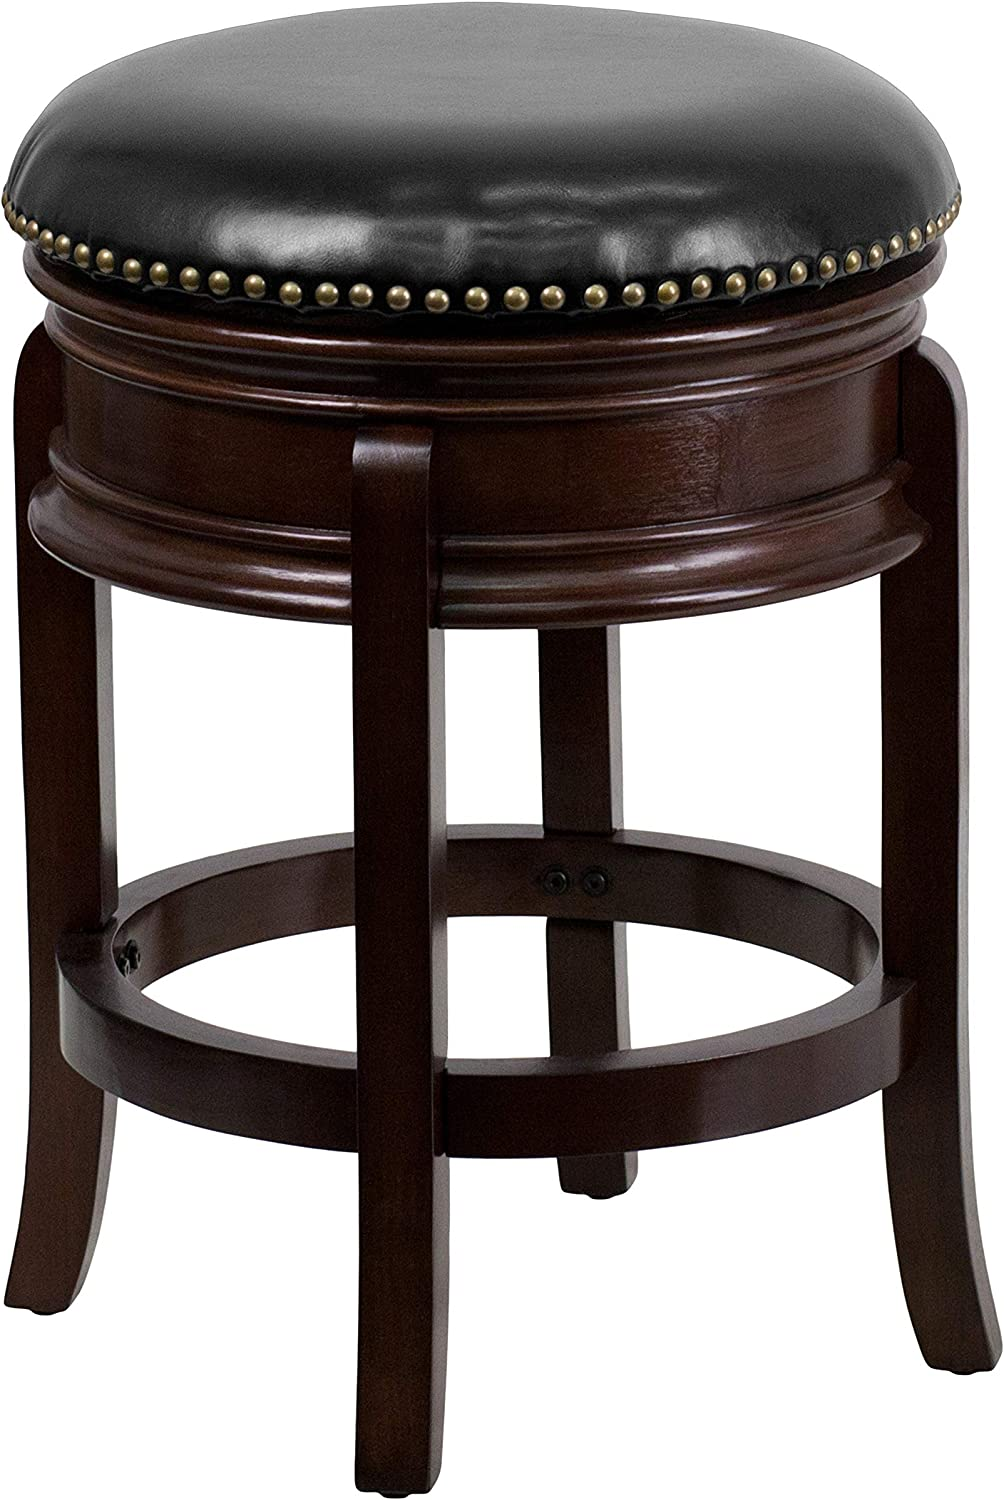 Flash Furniture 24 High Backless Cappuccino Wood Counter Height Stool with Carved Apron and Black Leather Swivel Seat –